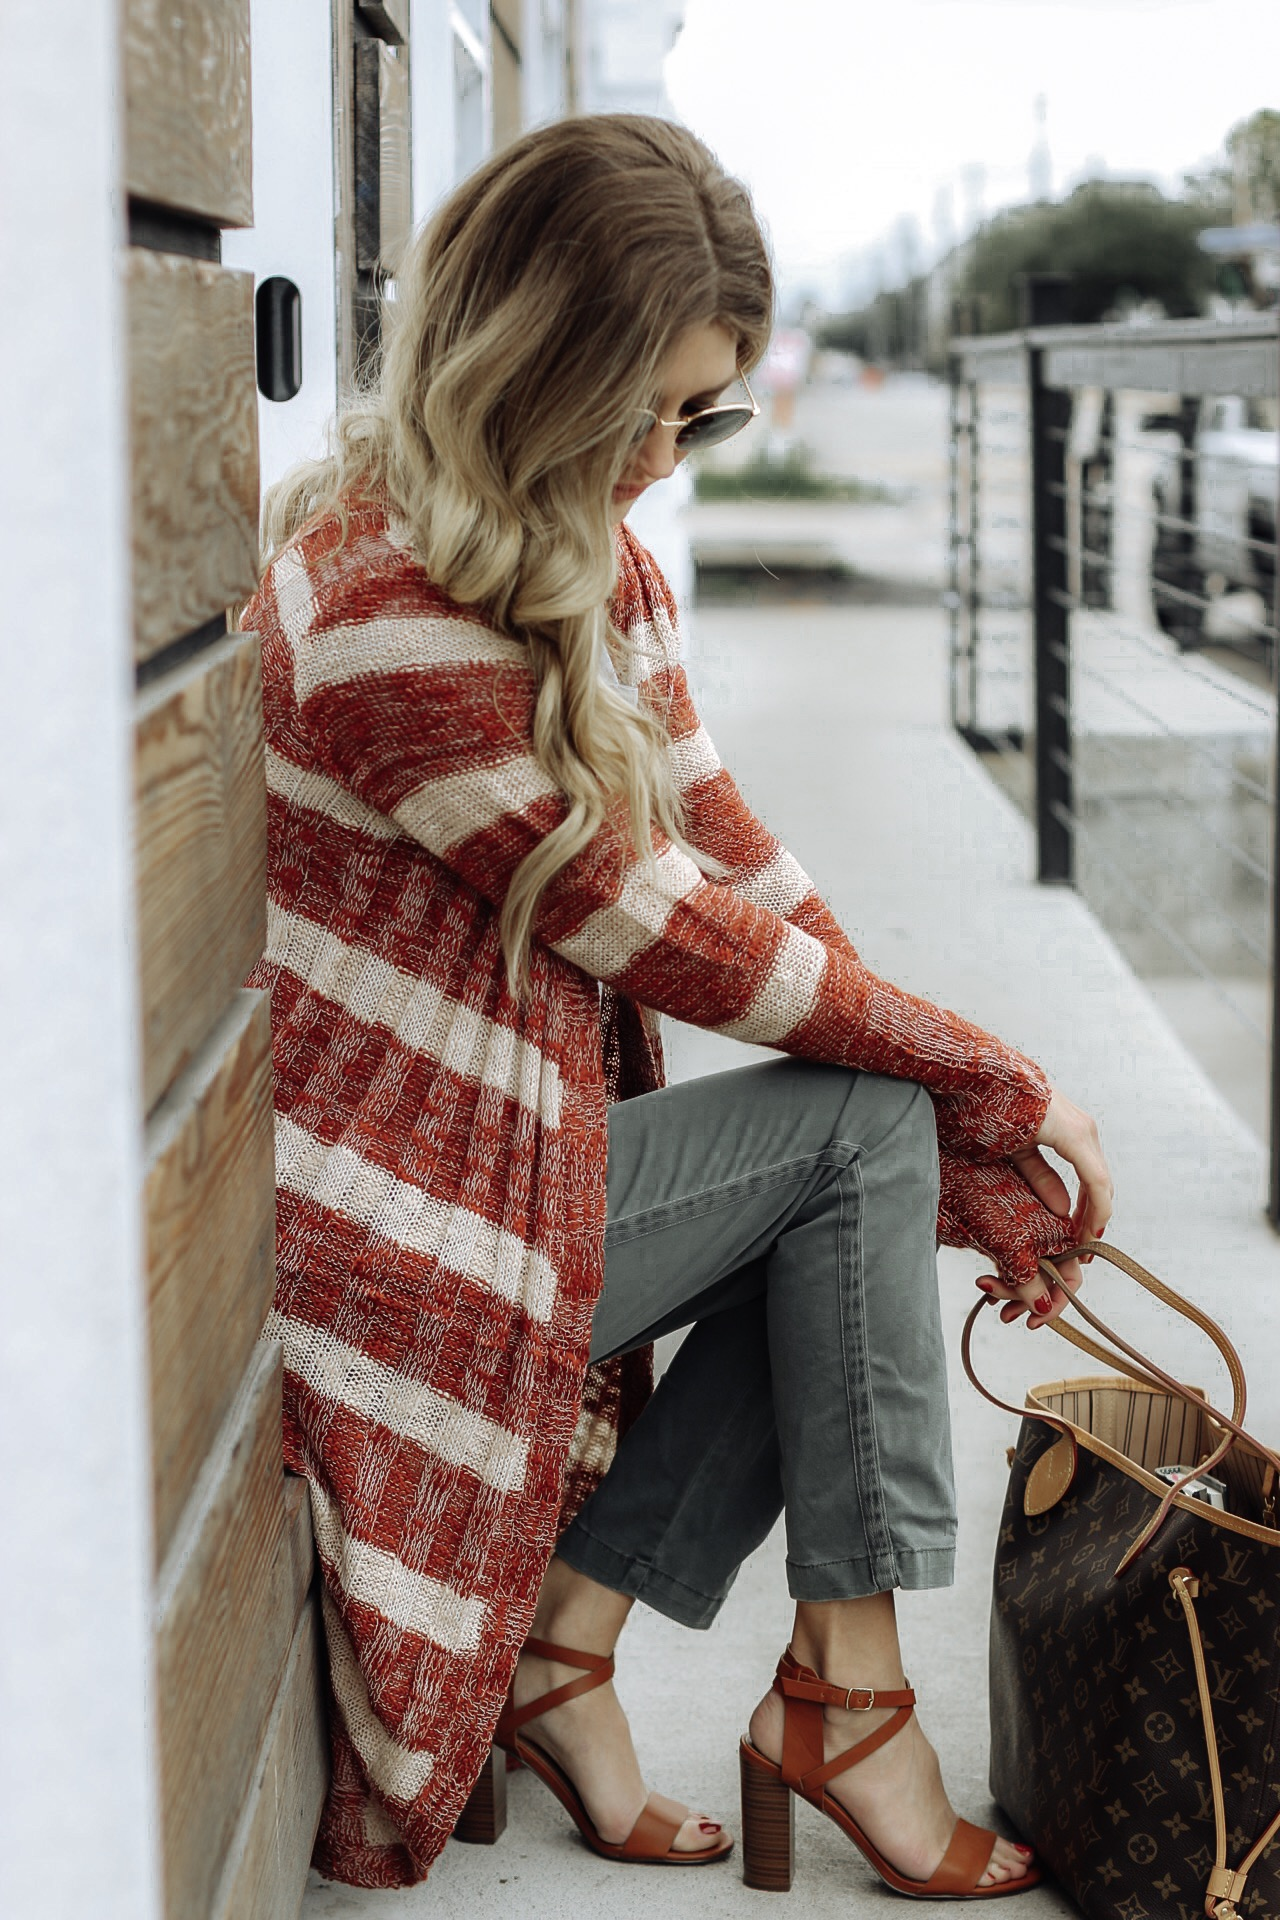 Wearing a cardigan and offering a Holiday giveaway from Shop Pink Brush